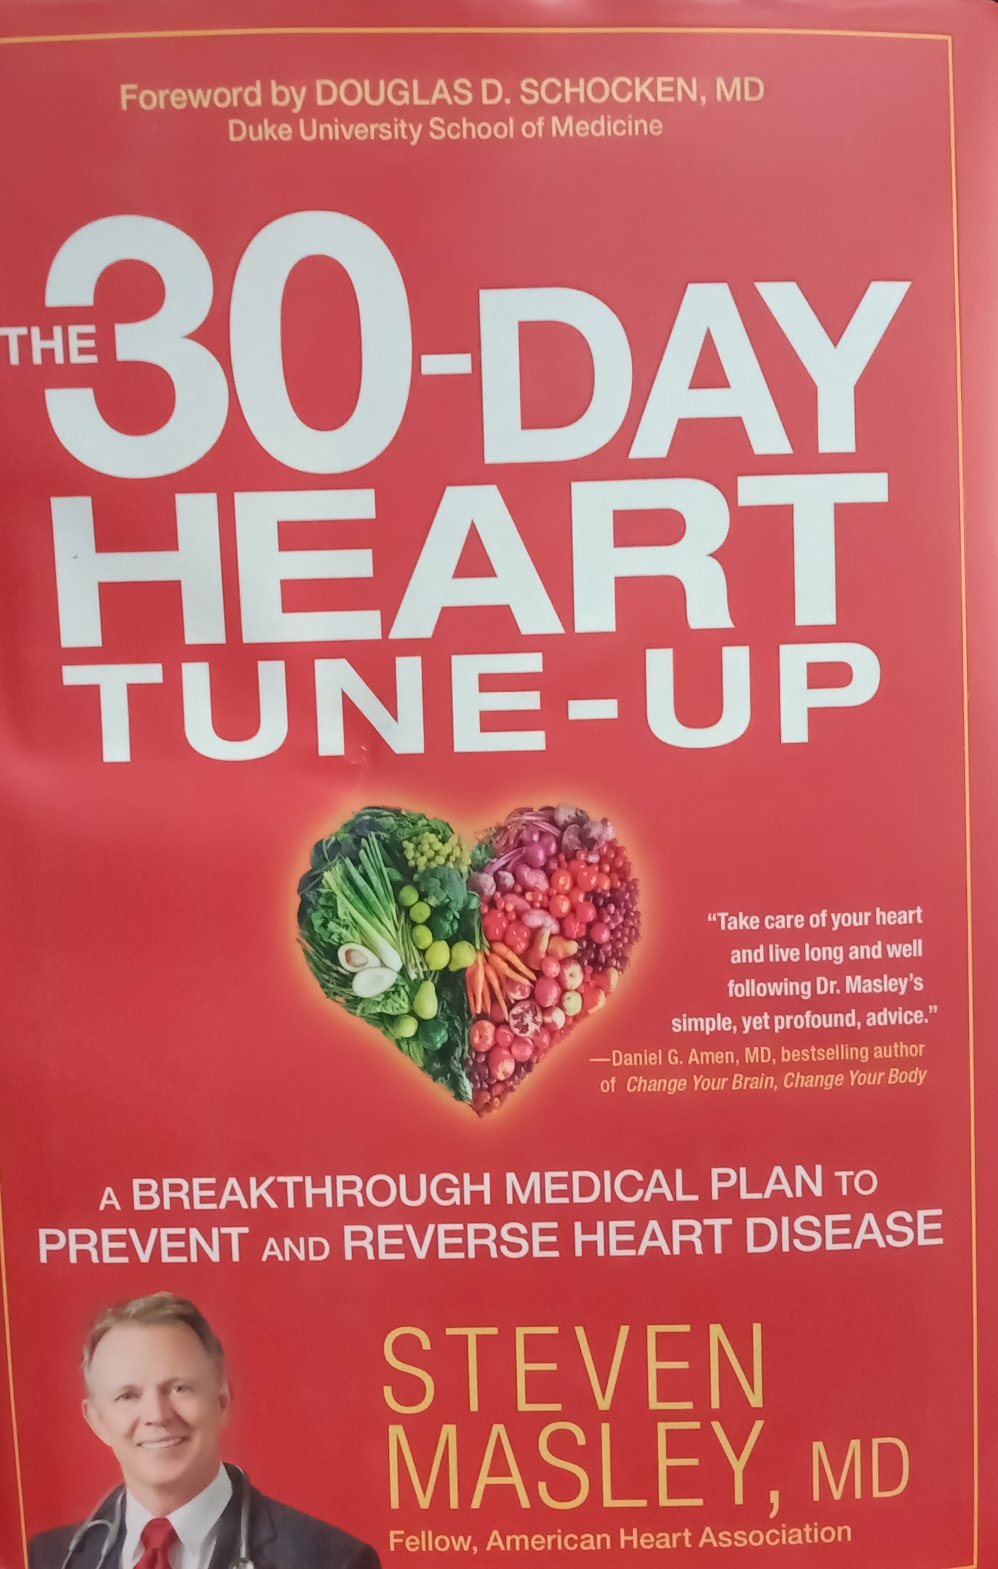 The 30 day heart tune up By Steven Masley, MD